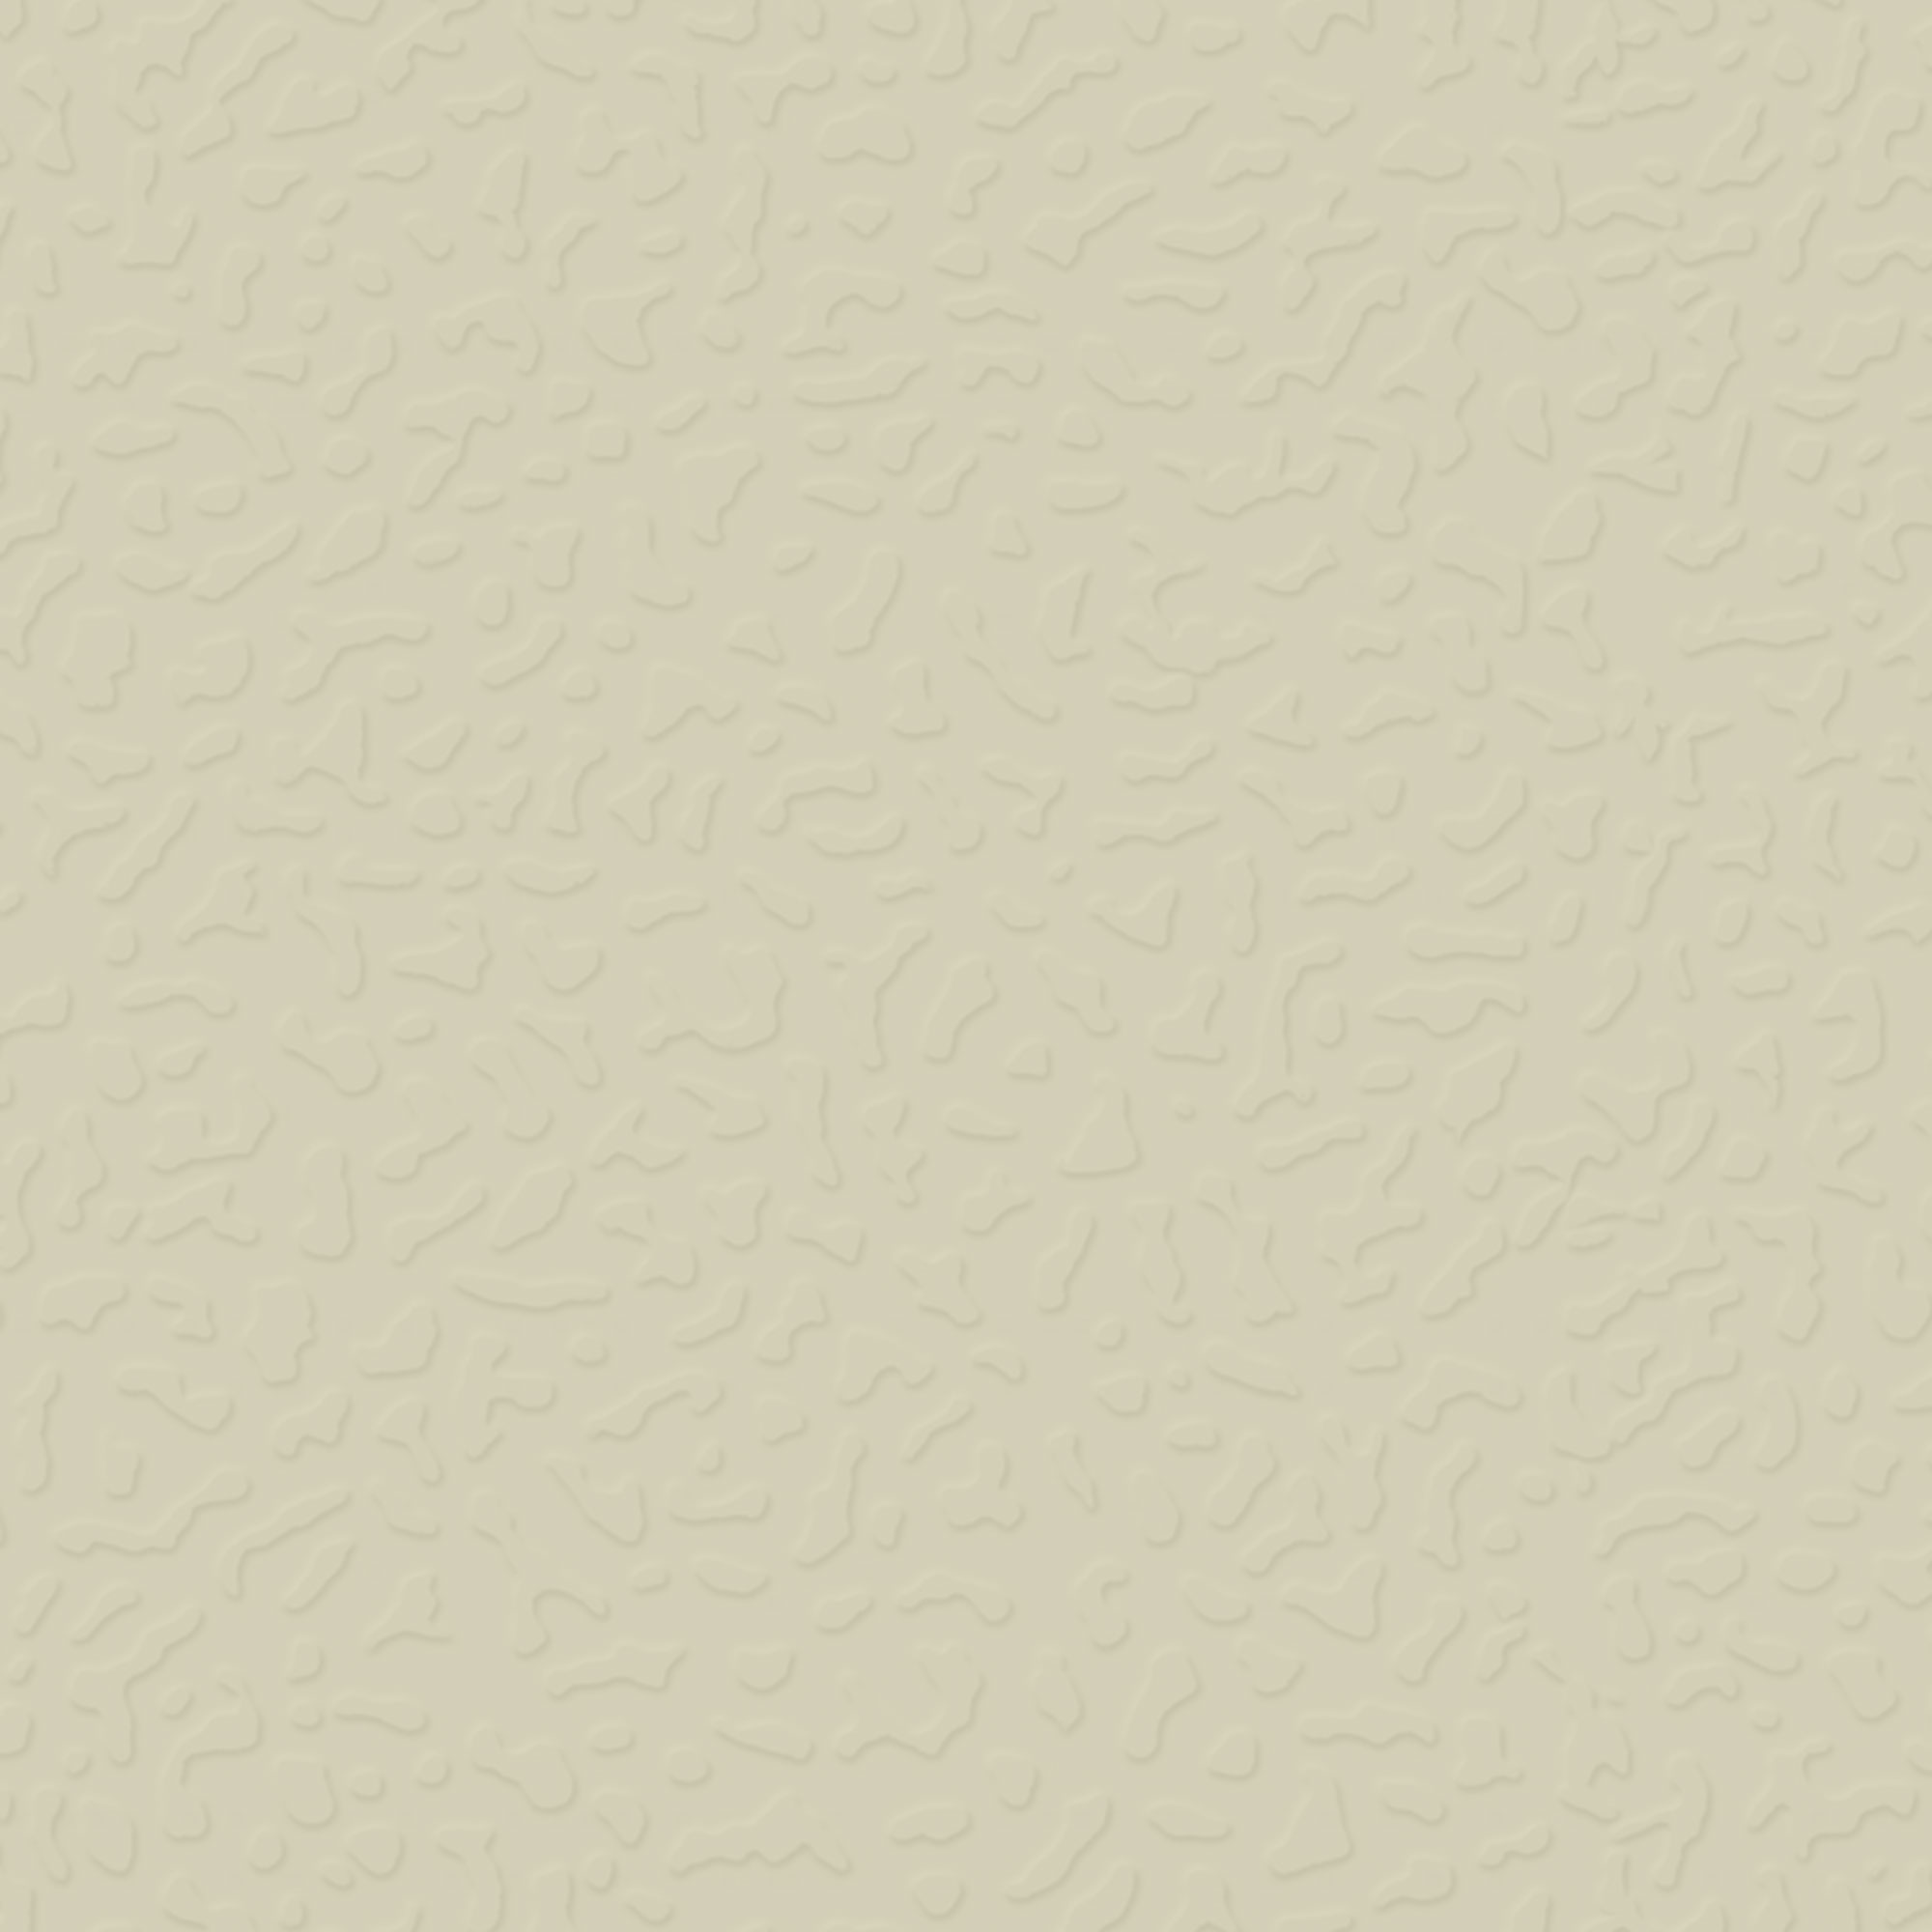 Roppe Rubber Tile 900 - Textured Design (993) Bisque LB996131